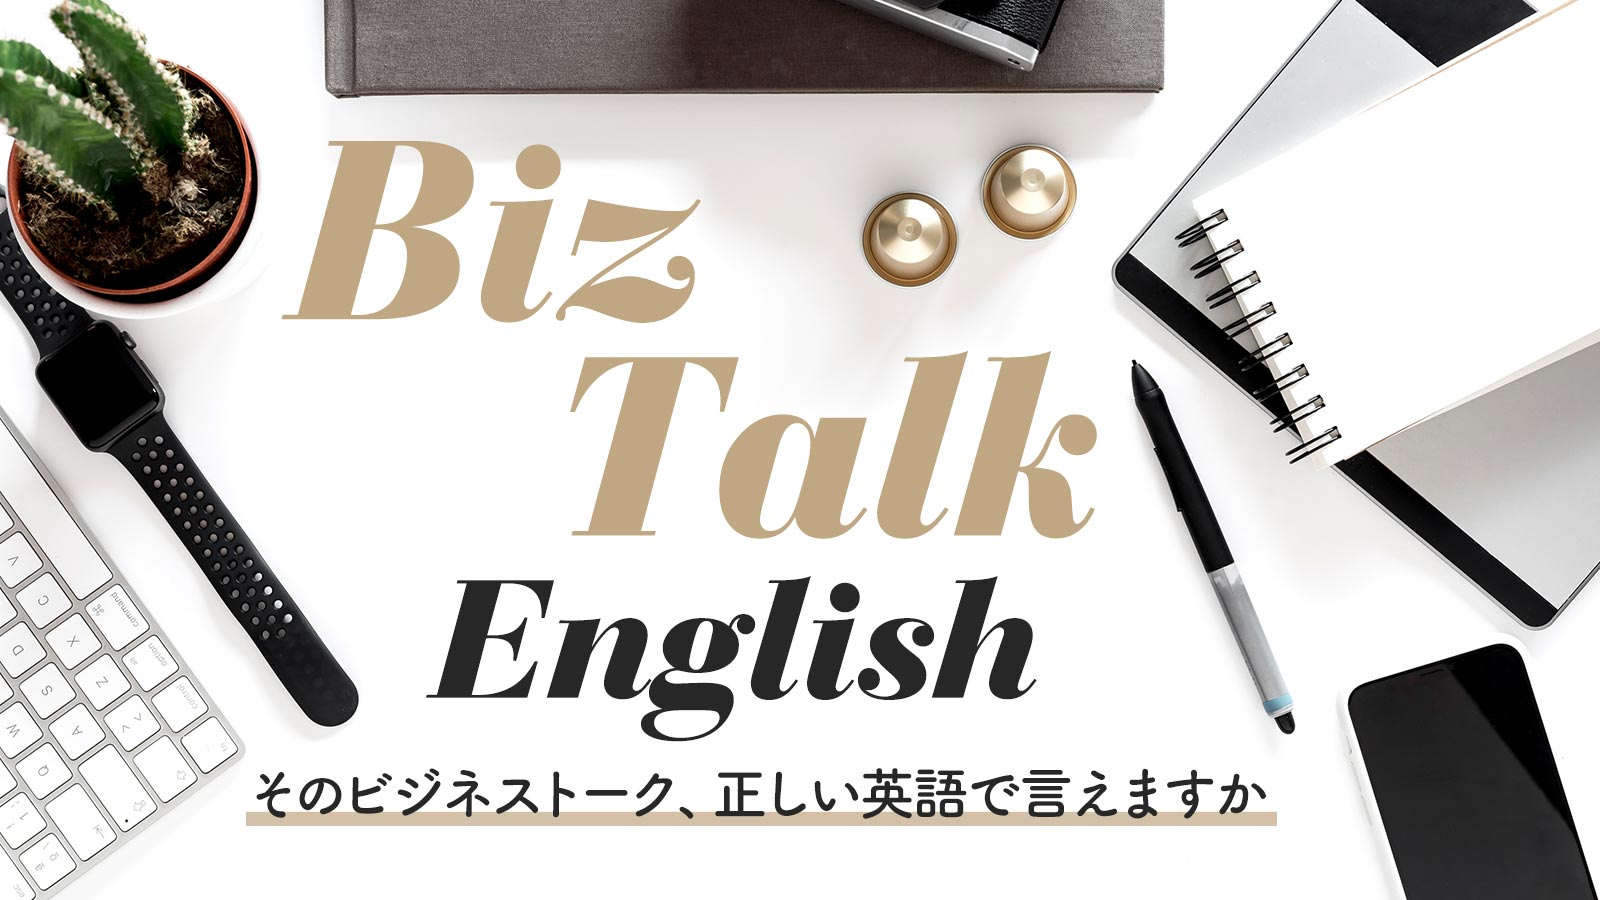 BizTalk English